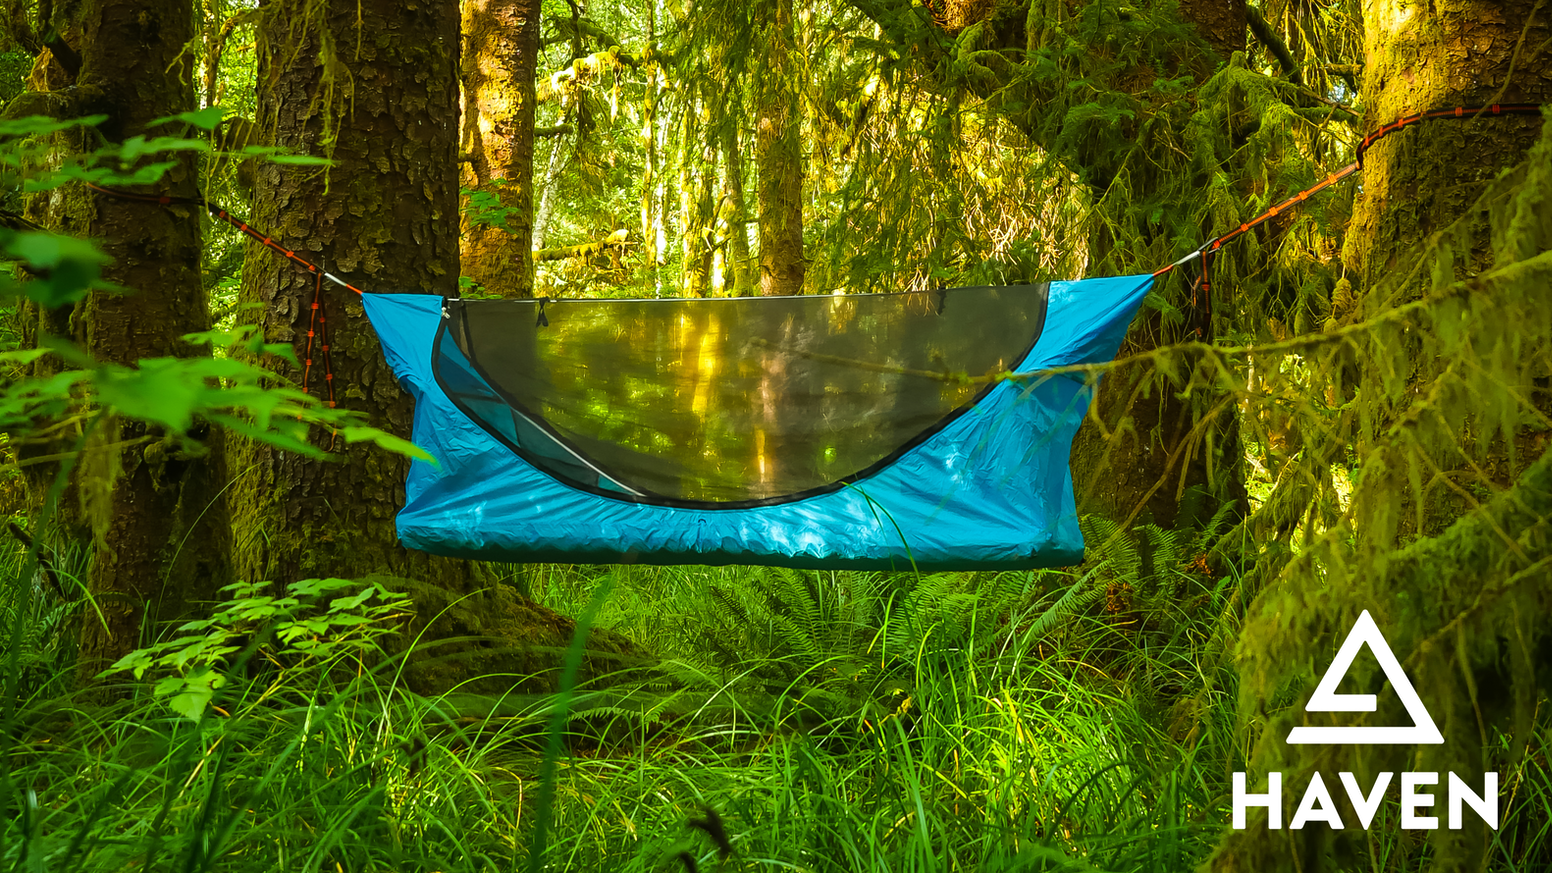 A simple, lightweight, all-in-one hammock tent. Haven makes sleep the highlight of camping.